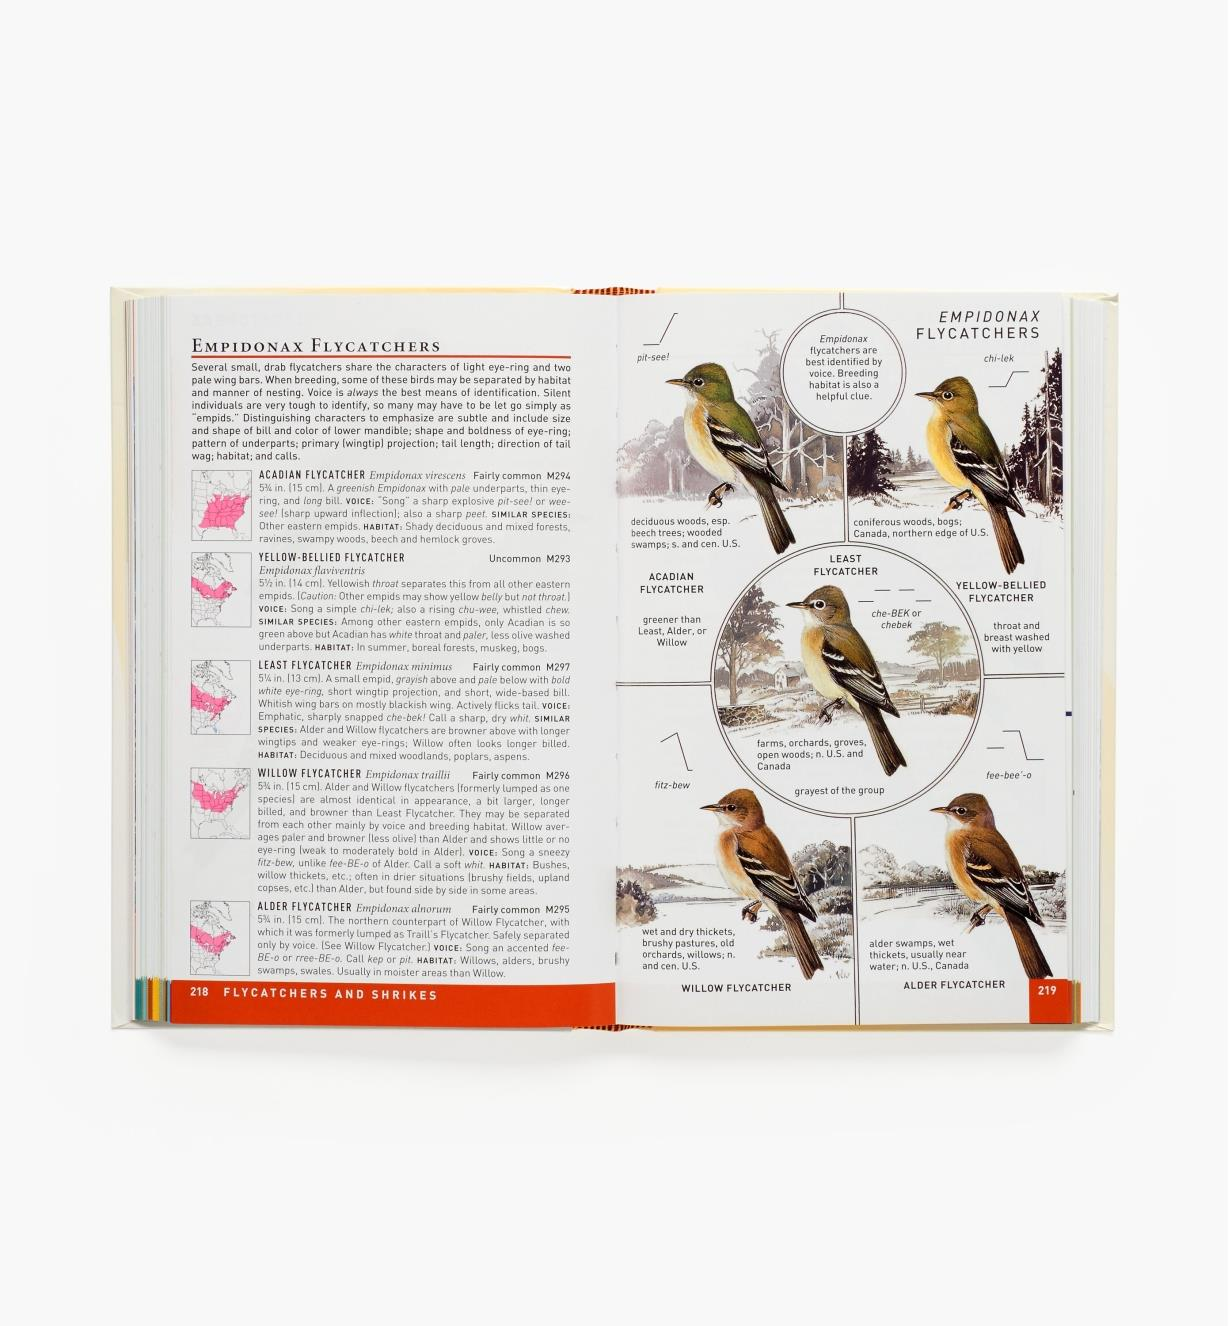 LA191 - Peterson Field Guide, Eastern/Central Birds, 2010